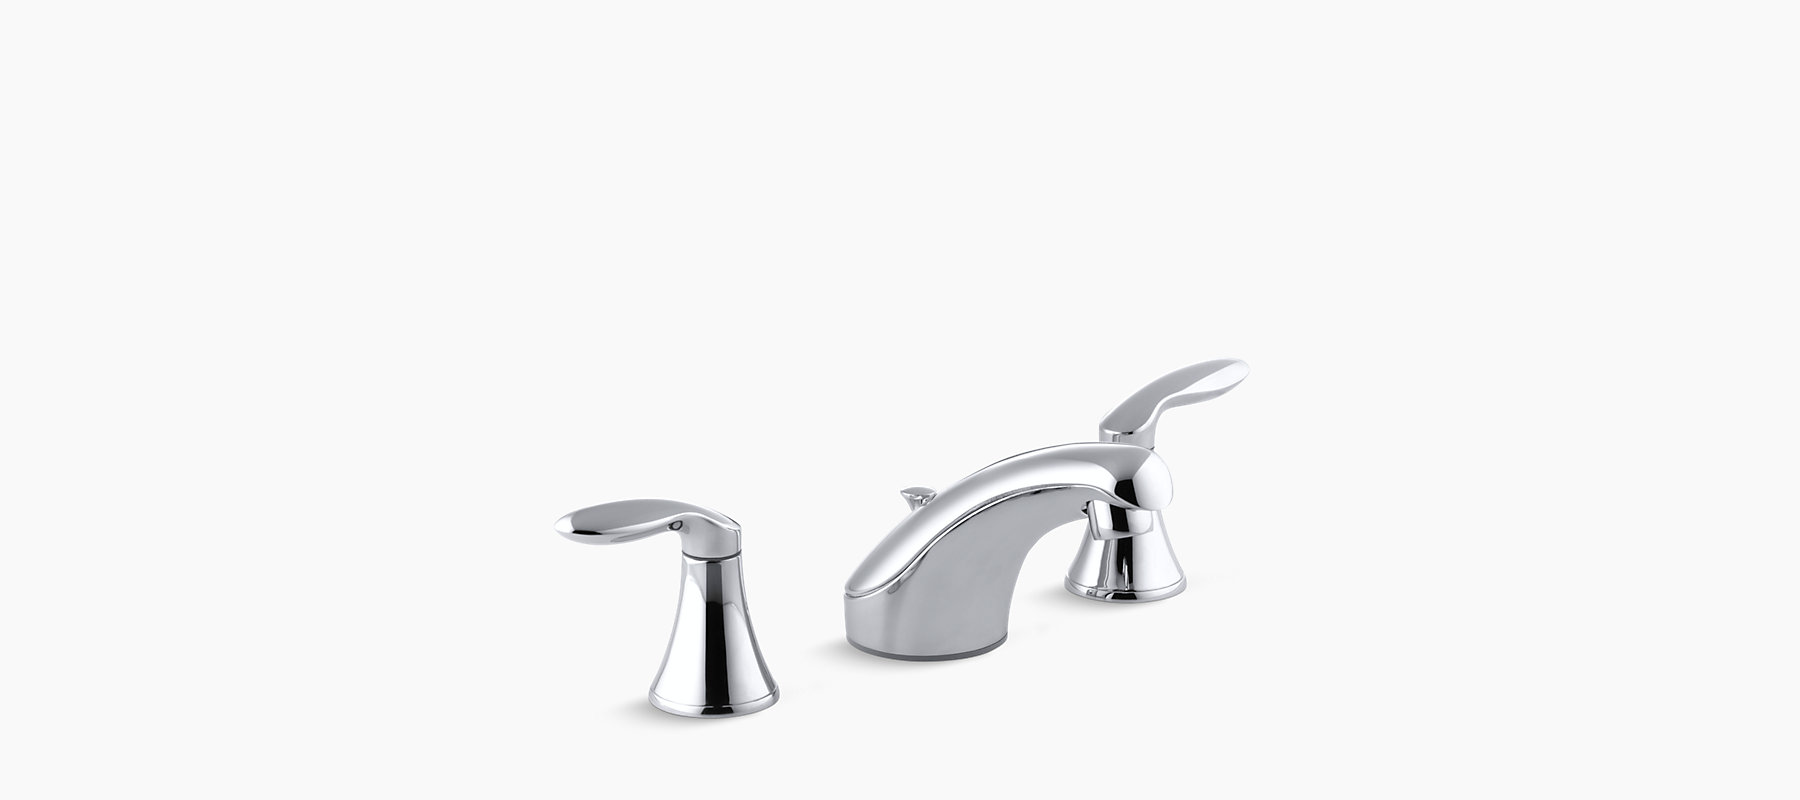 Coralais Widespread Bathroom Sink Faucet | K-15261-4 | KOHLER